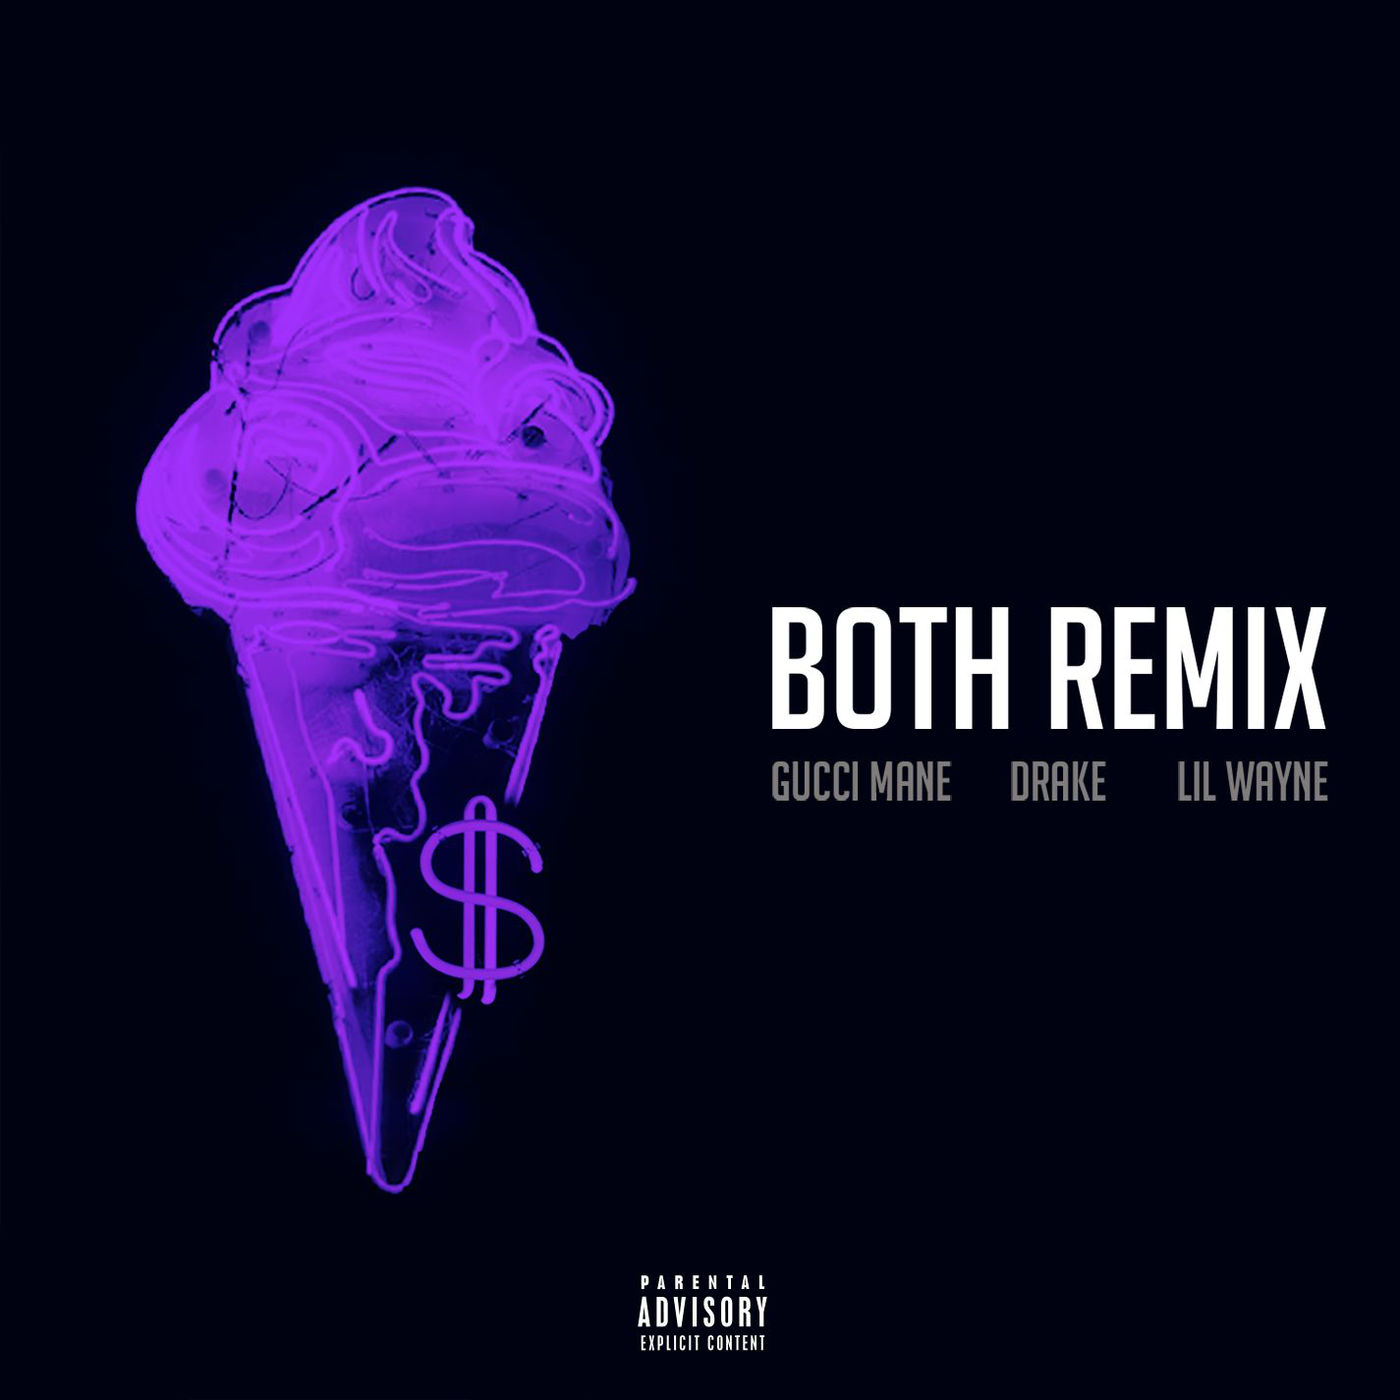 Gucci Mane - Both (feat. Drake & Lil Wayne) [Remix] - Single Cover